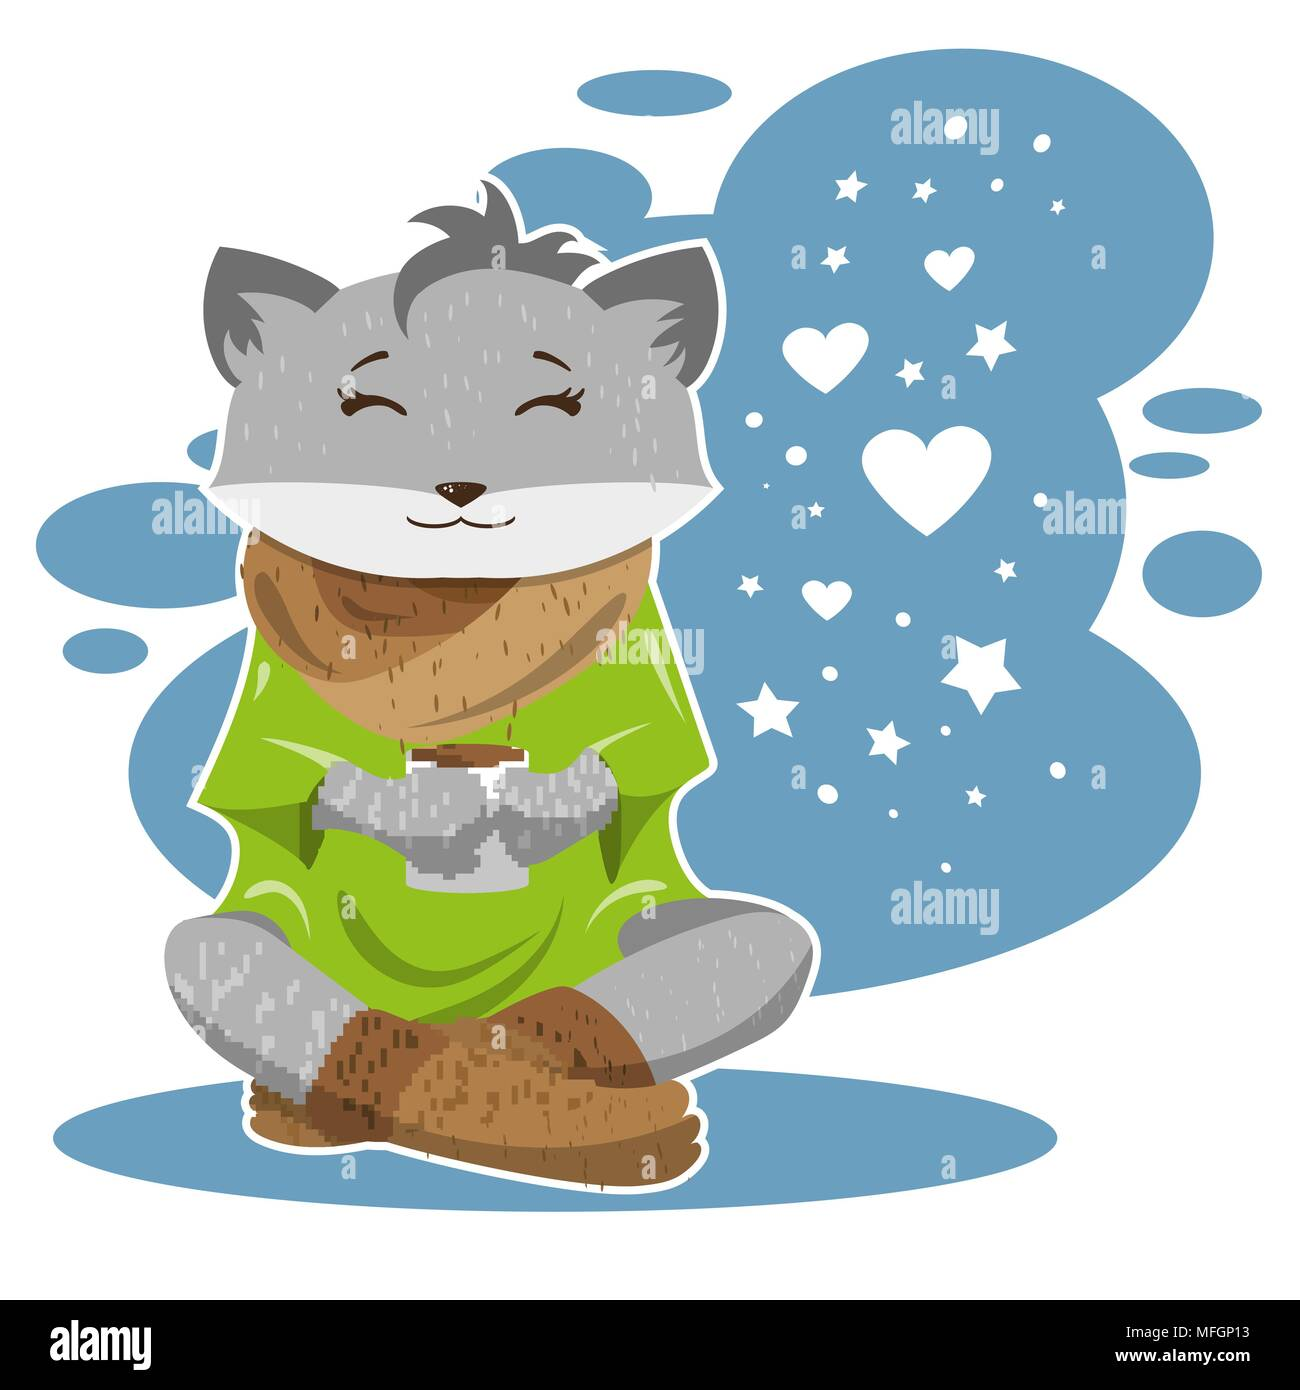 The fox in winter and cold drinks tea or coffee and thinks about love. Vector illustration - Stock Image